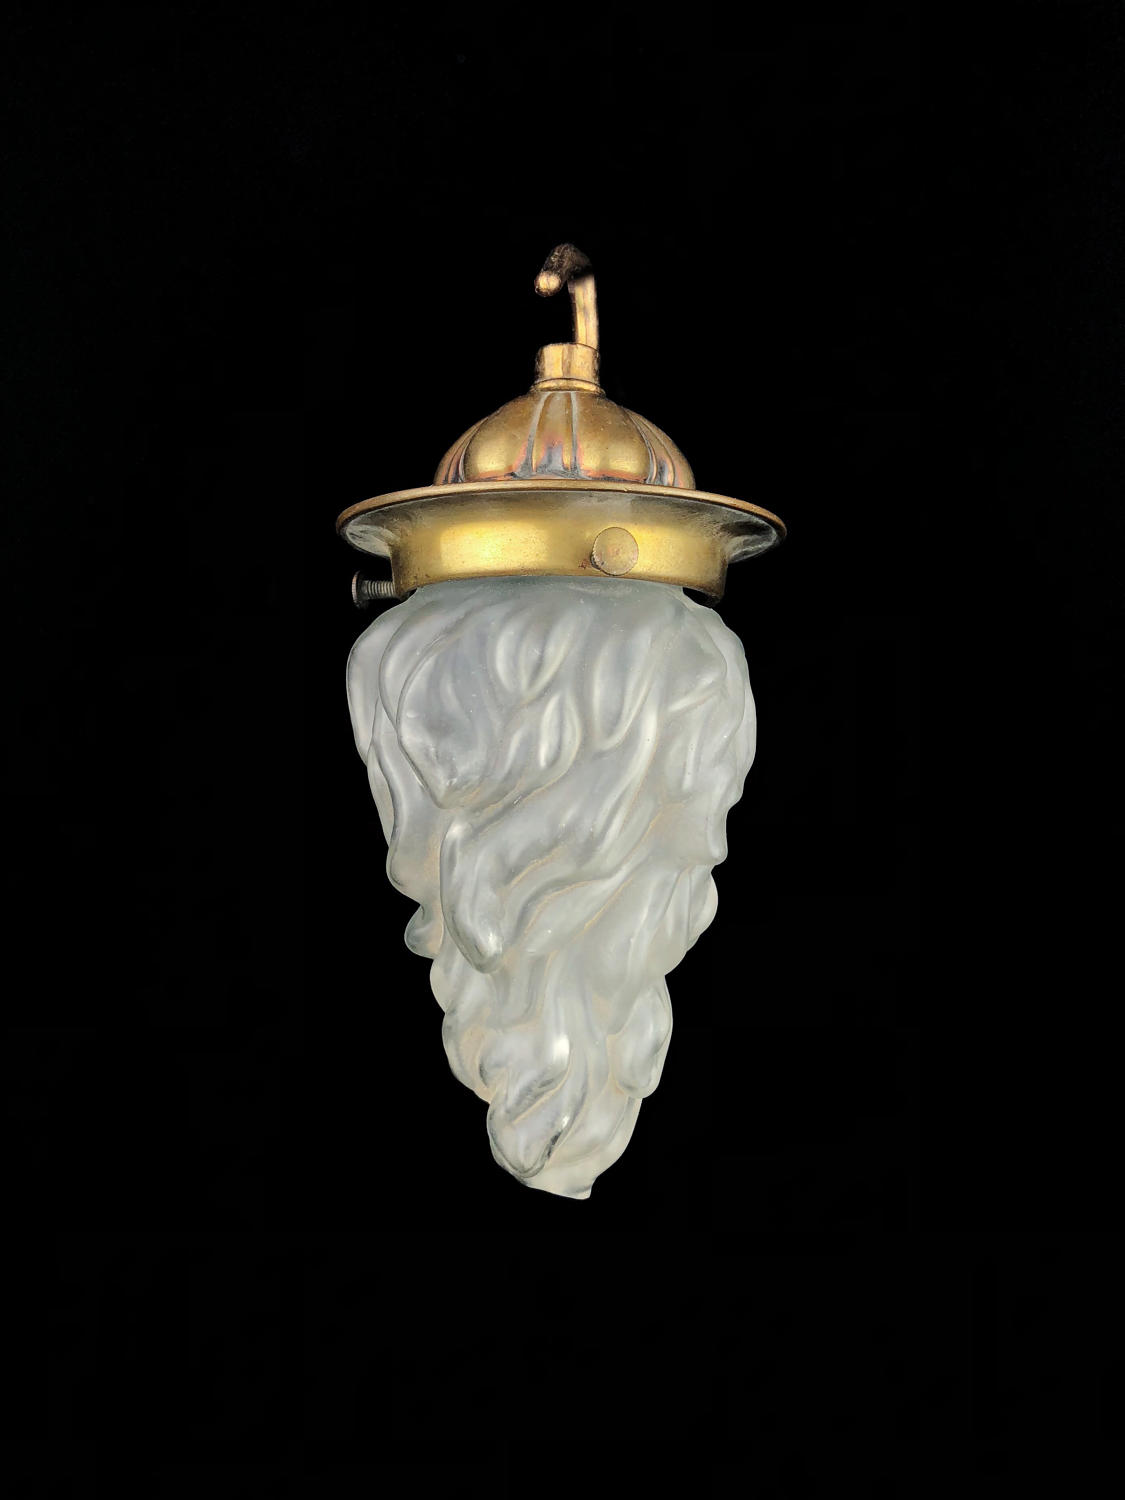 A small flambe ceiling light